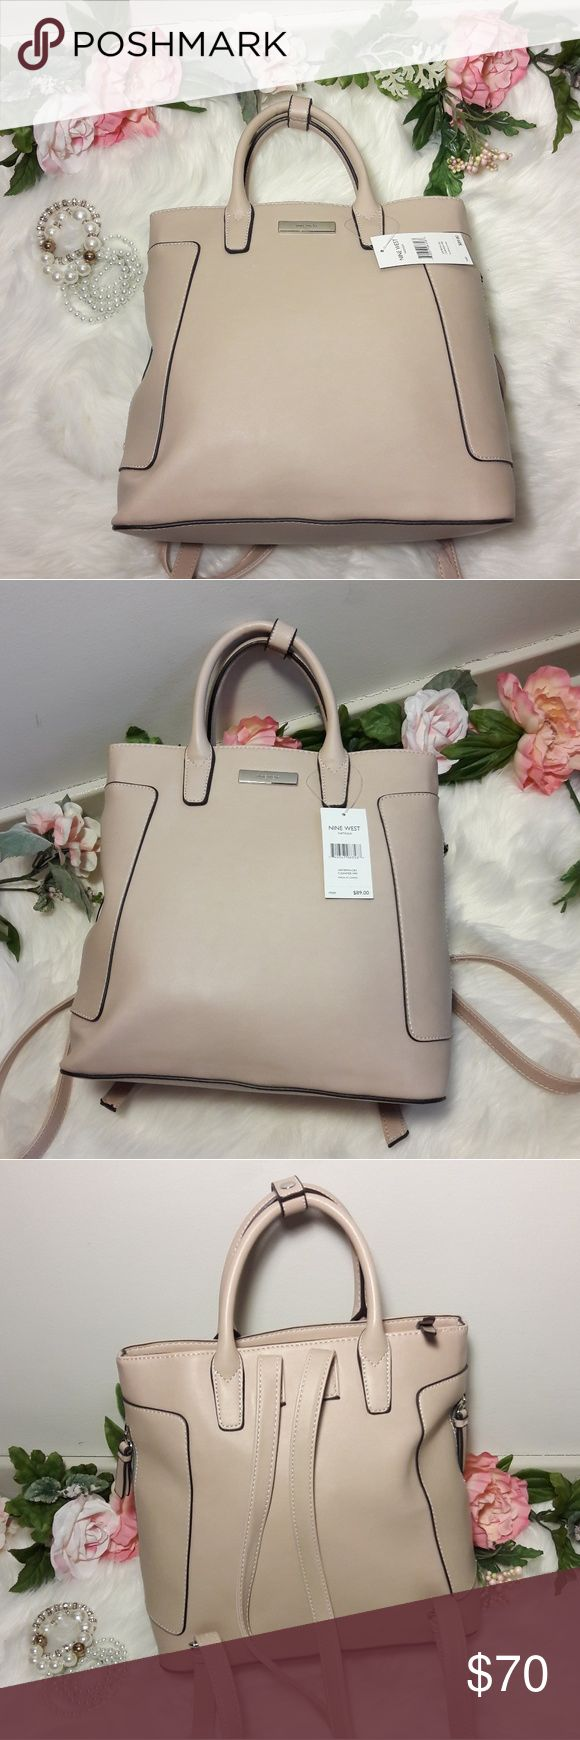 Authentic NWT Nine West Backpack NWT Authentic West Natassa LG Tote Backpack Carrying Handbag Purse.  Brand New, Never used handbag with tags. $89.00 Value  Color: Cashmer  Please be sure to view all images.  Thank you for Looking & Sharing Happy Poshing😄💗 Nine West Bags Backpacks